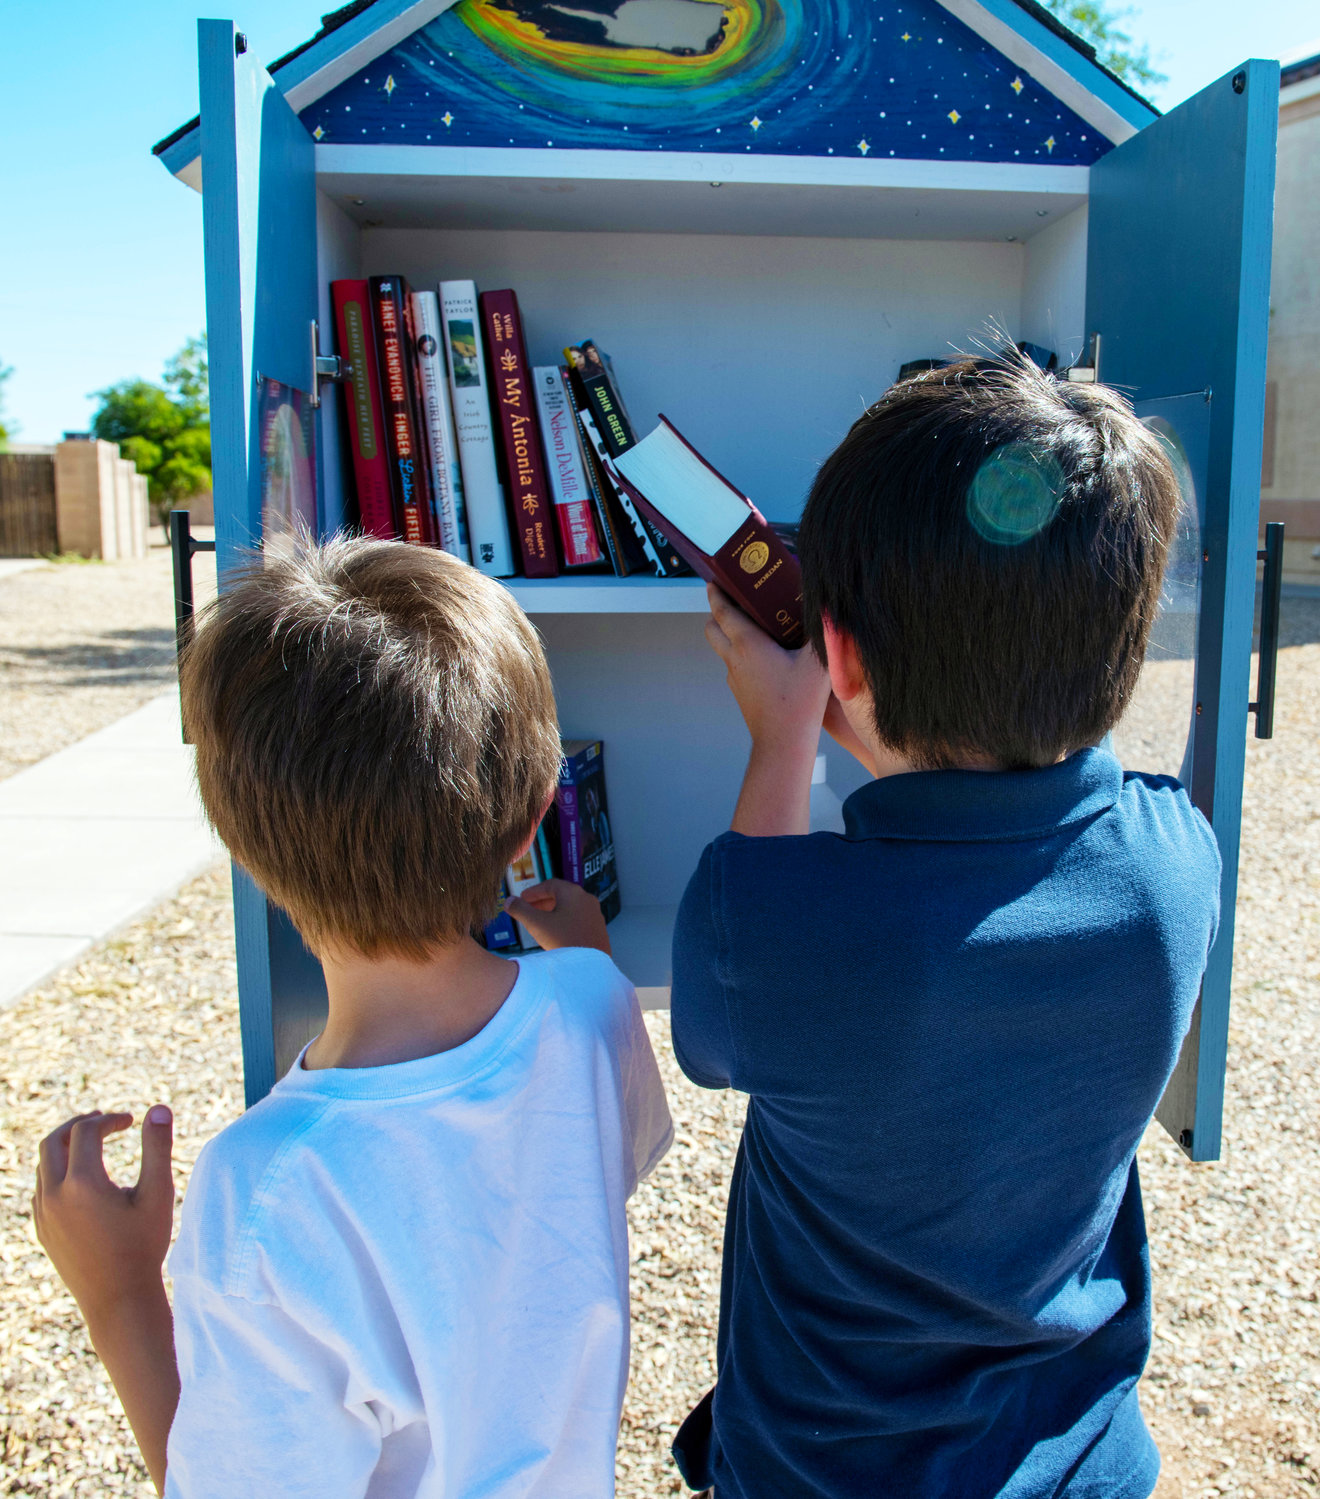 Two brothers return books to the Ocotillo Manor loaner library at Luke Air Force Base, July 28. The structure provides free books for families to take and leave a new one in its place.